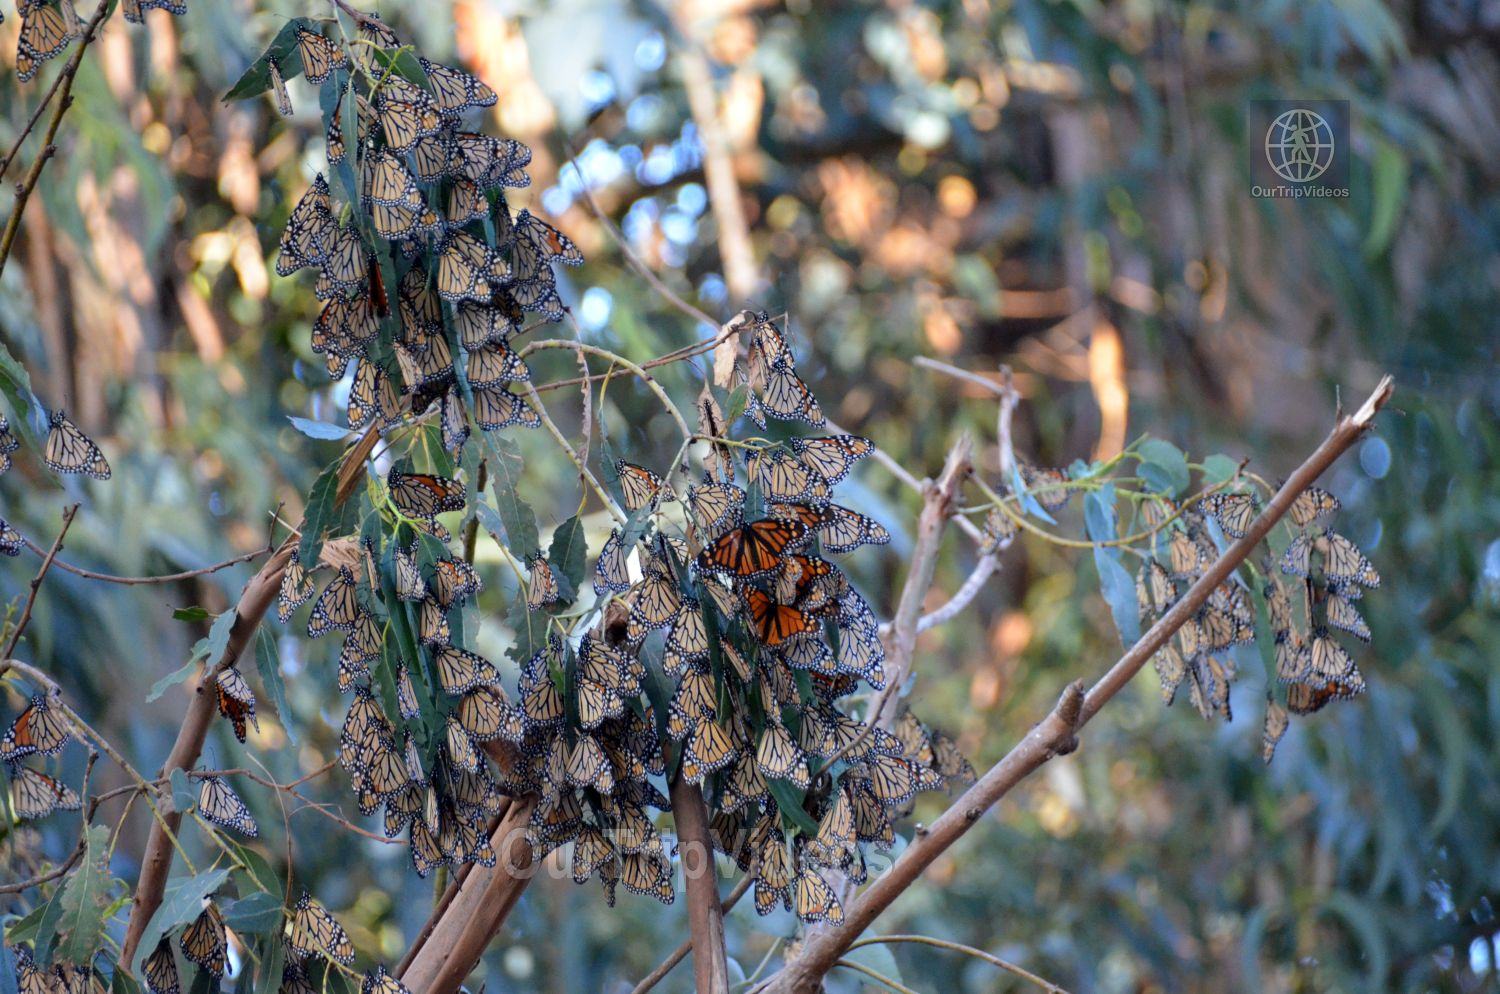 Monarch Butterfly Grove, Pismo Beach, CA, USA - Picture 15 of 25